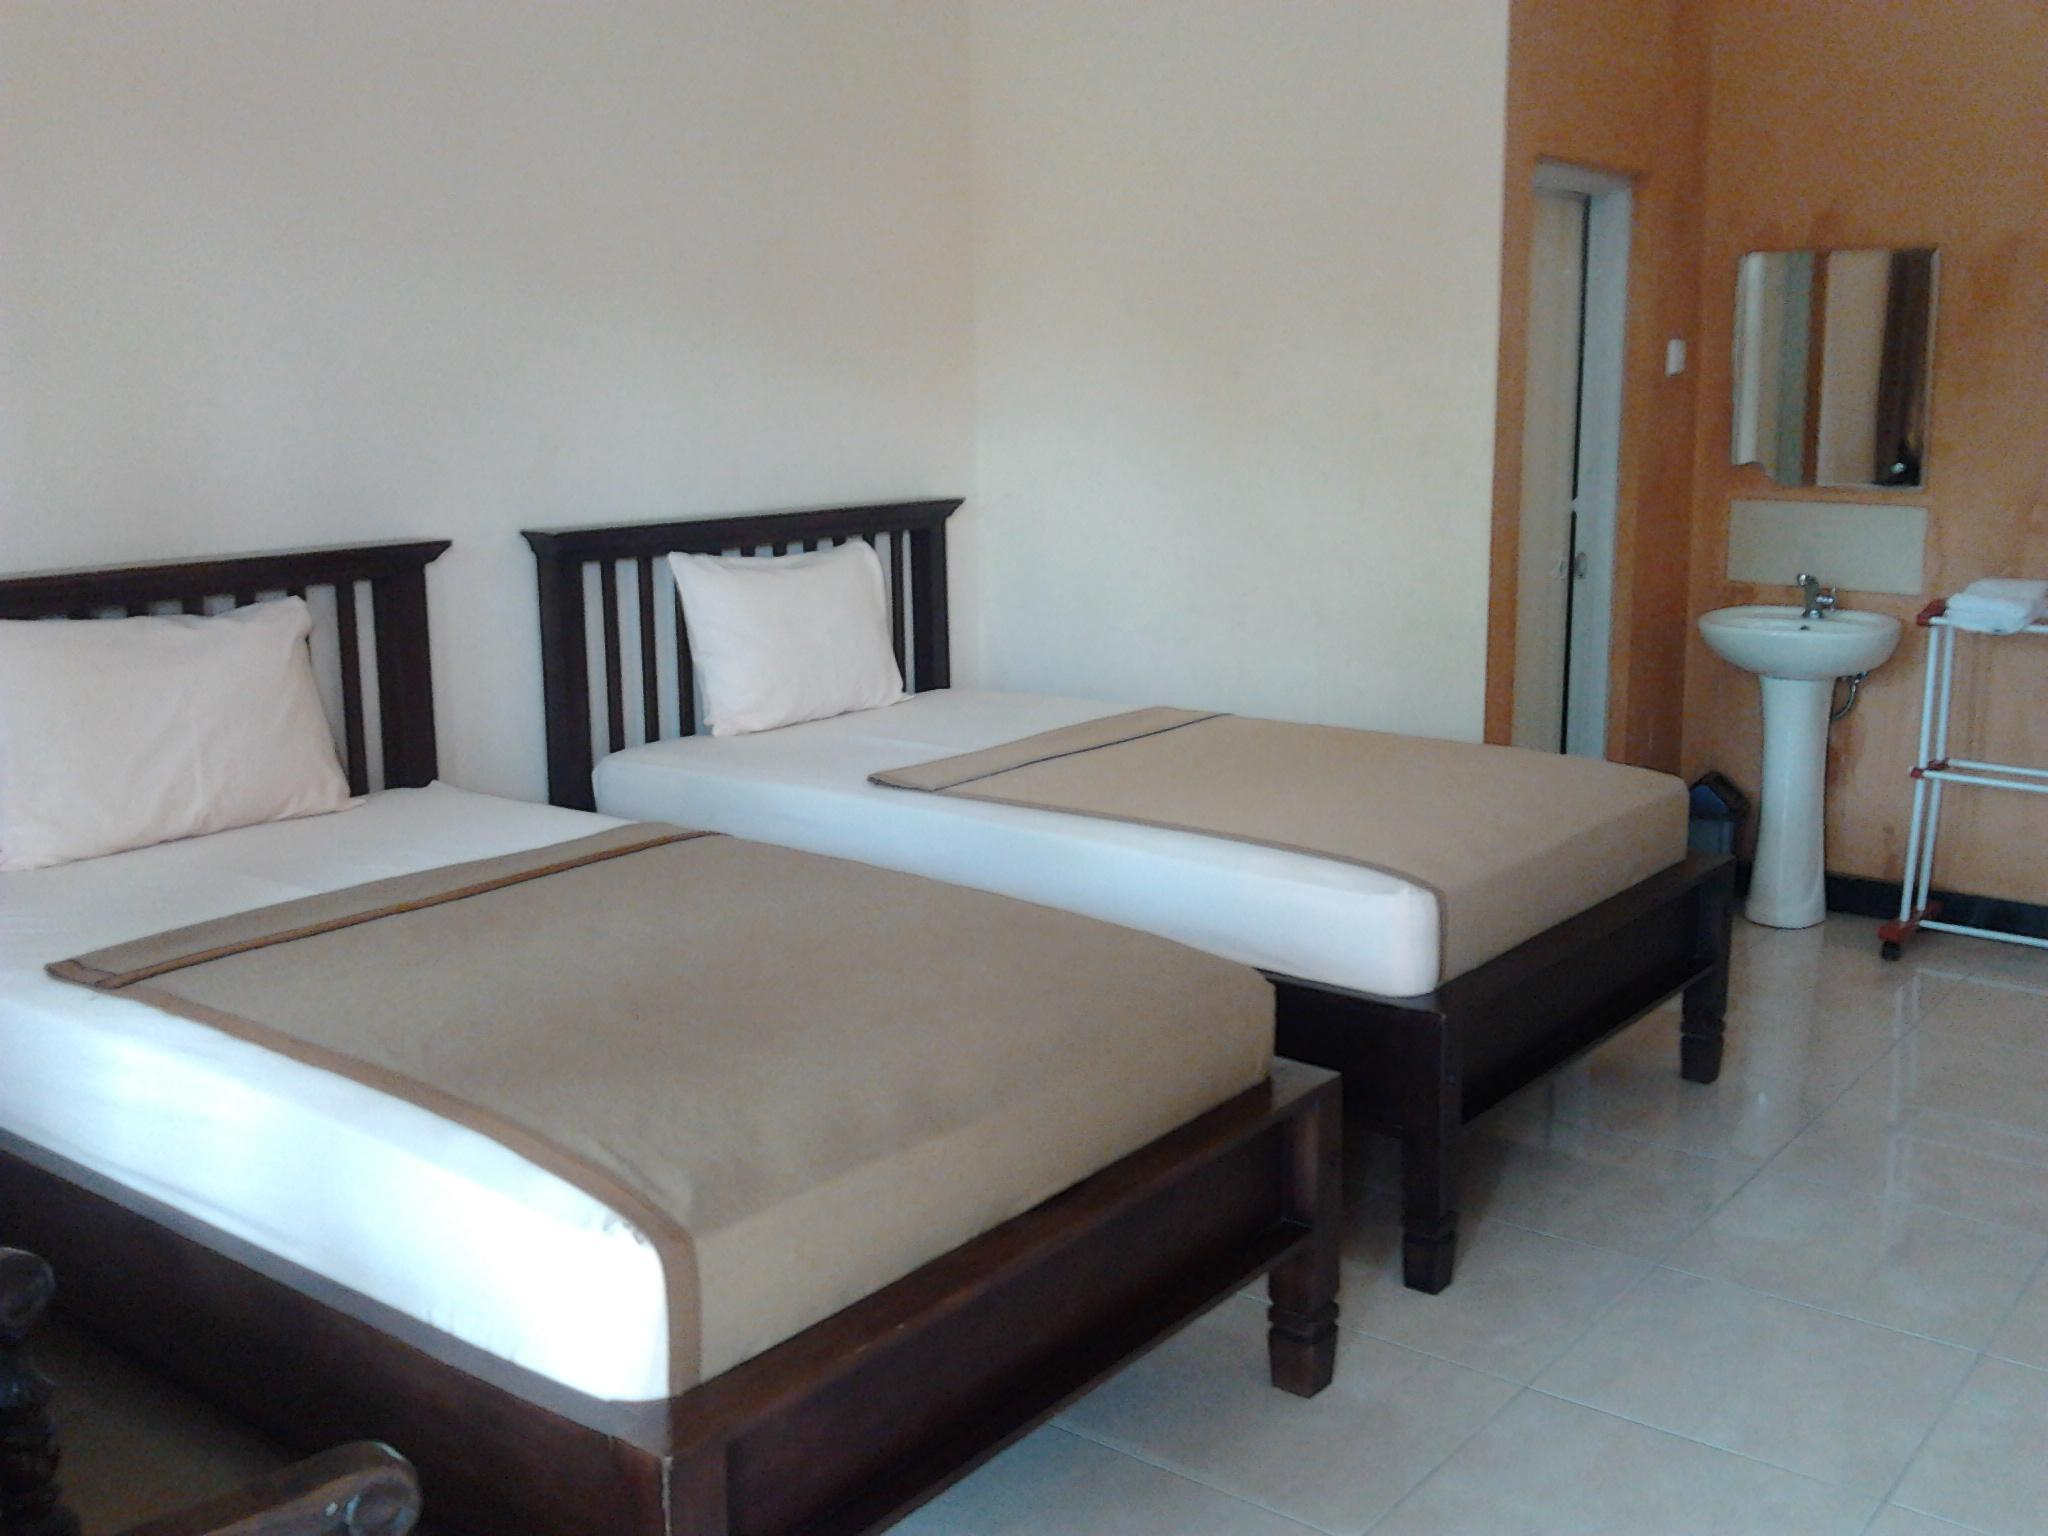 Best Price on Astro Hotel Purwokerto in Purwokerto + Reviews!